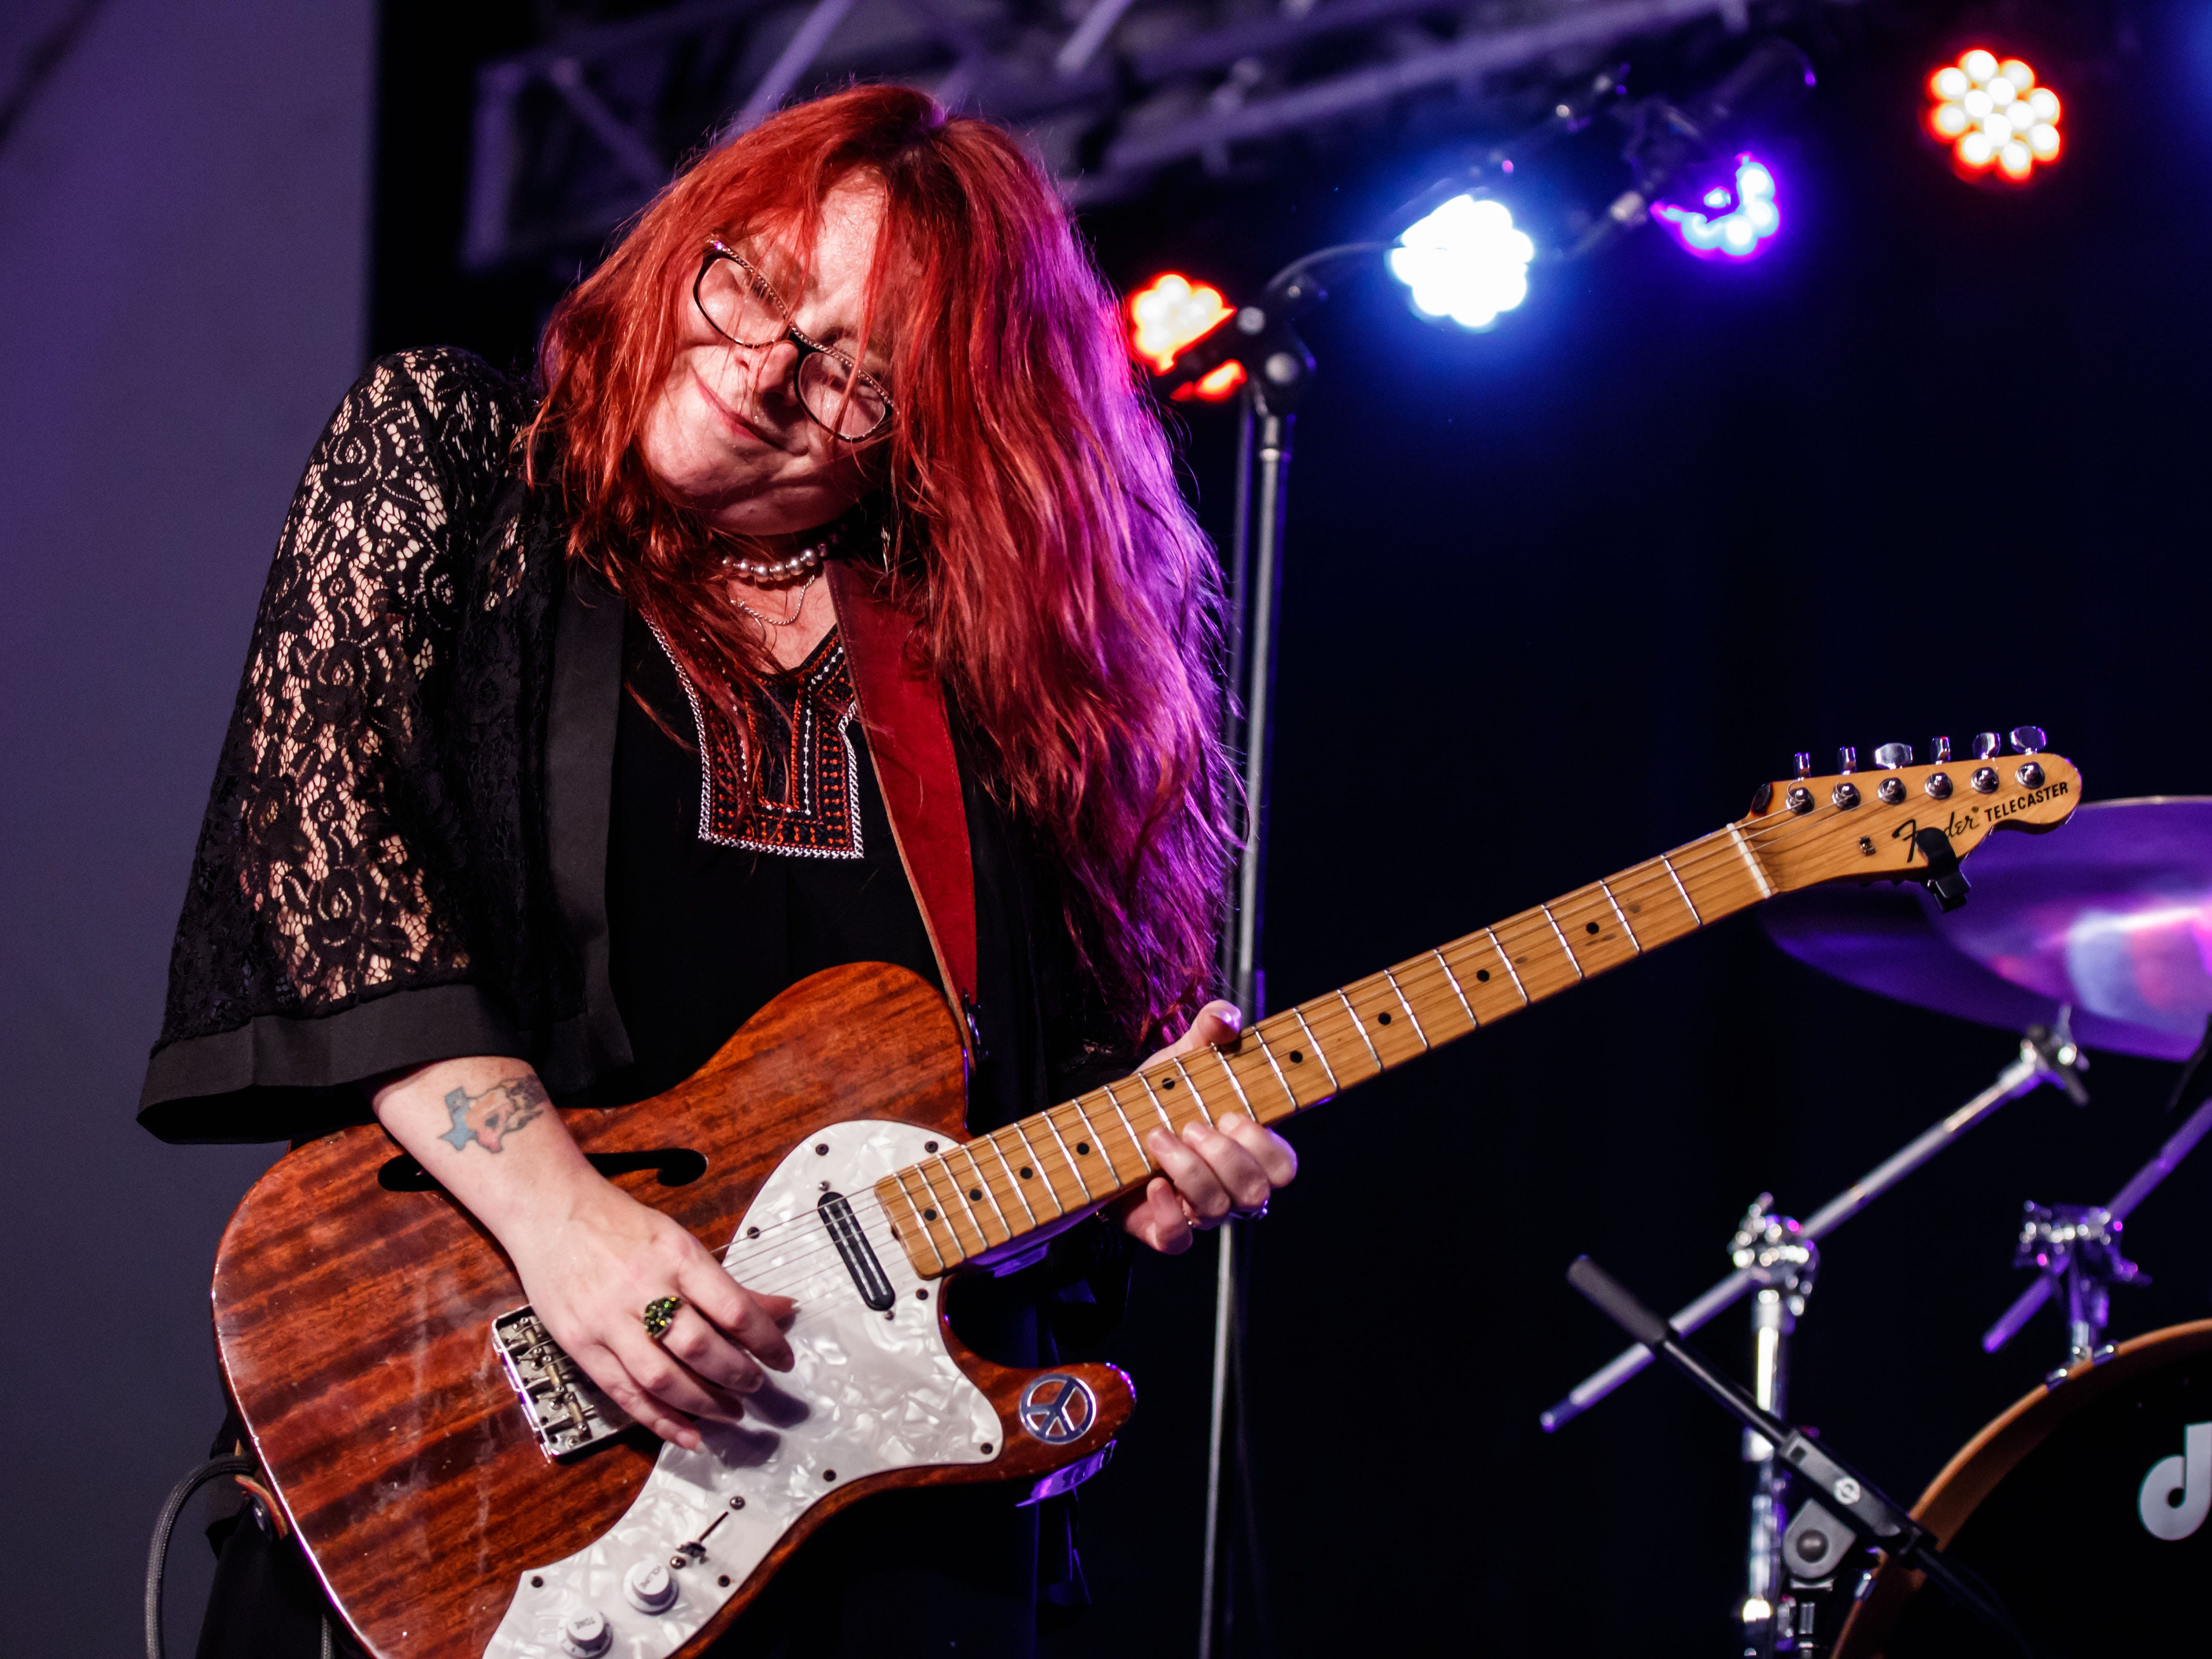 Carolyn Wonderland performs with her band at the 12th annual Waukesha Rotary BluesFest in Naga-waukee Park on Friday, August 10, 2018. The annual two-day music and art festival features live music, food and beverages, artist displays and more.